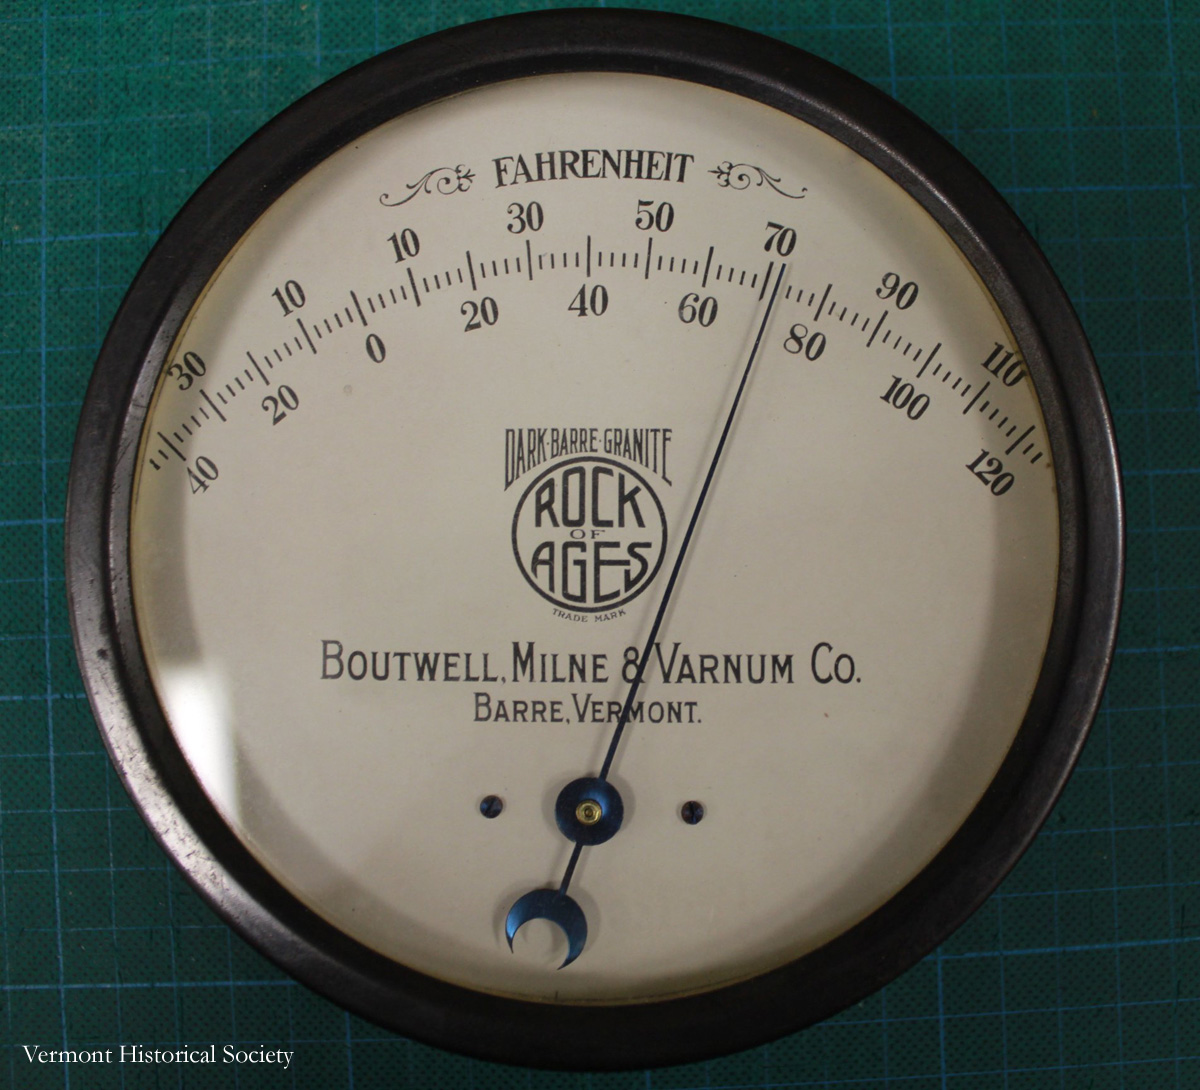 This thermometer was made around the end of the 19th century. On it are different logos for industries in Vermont.